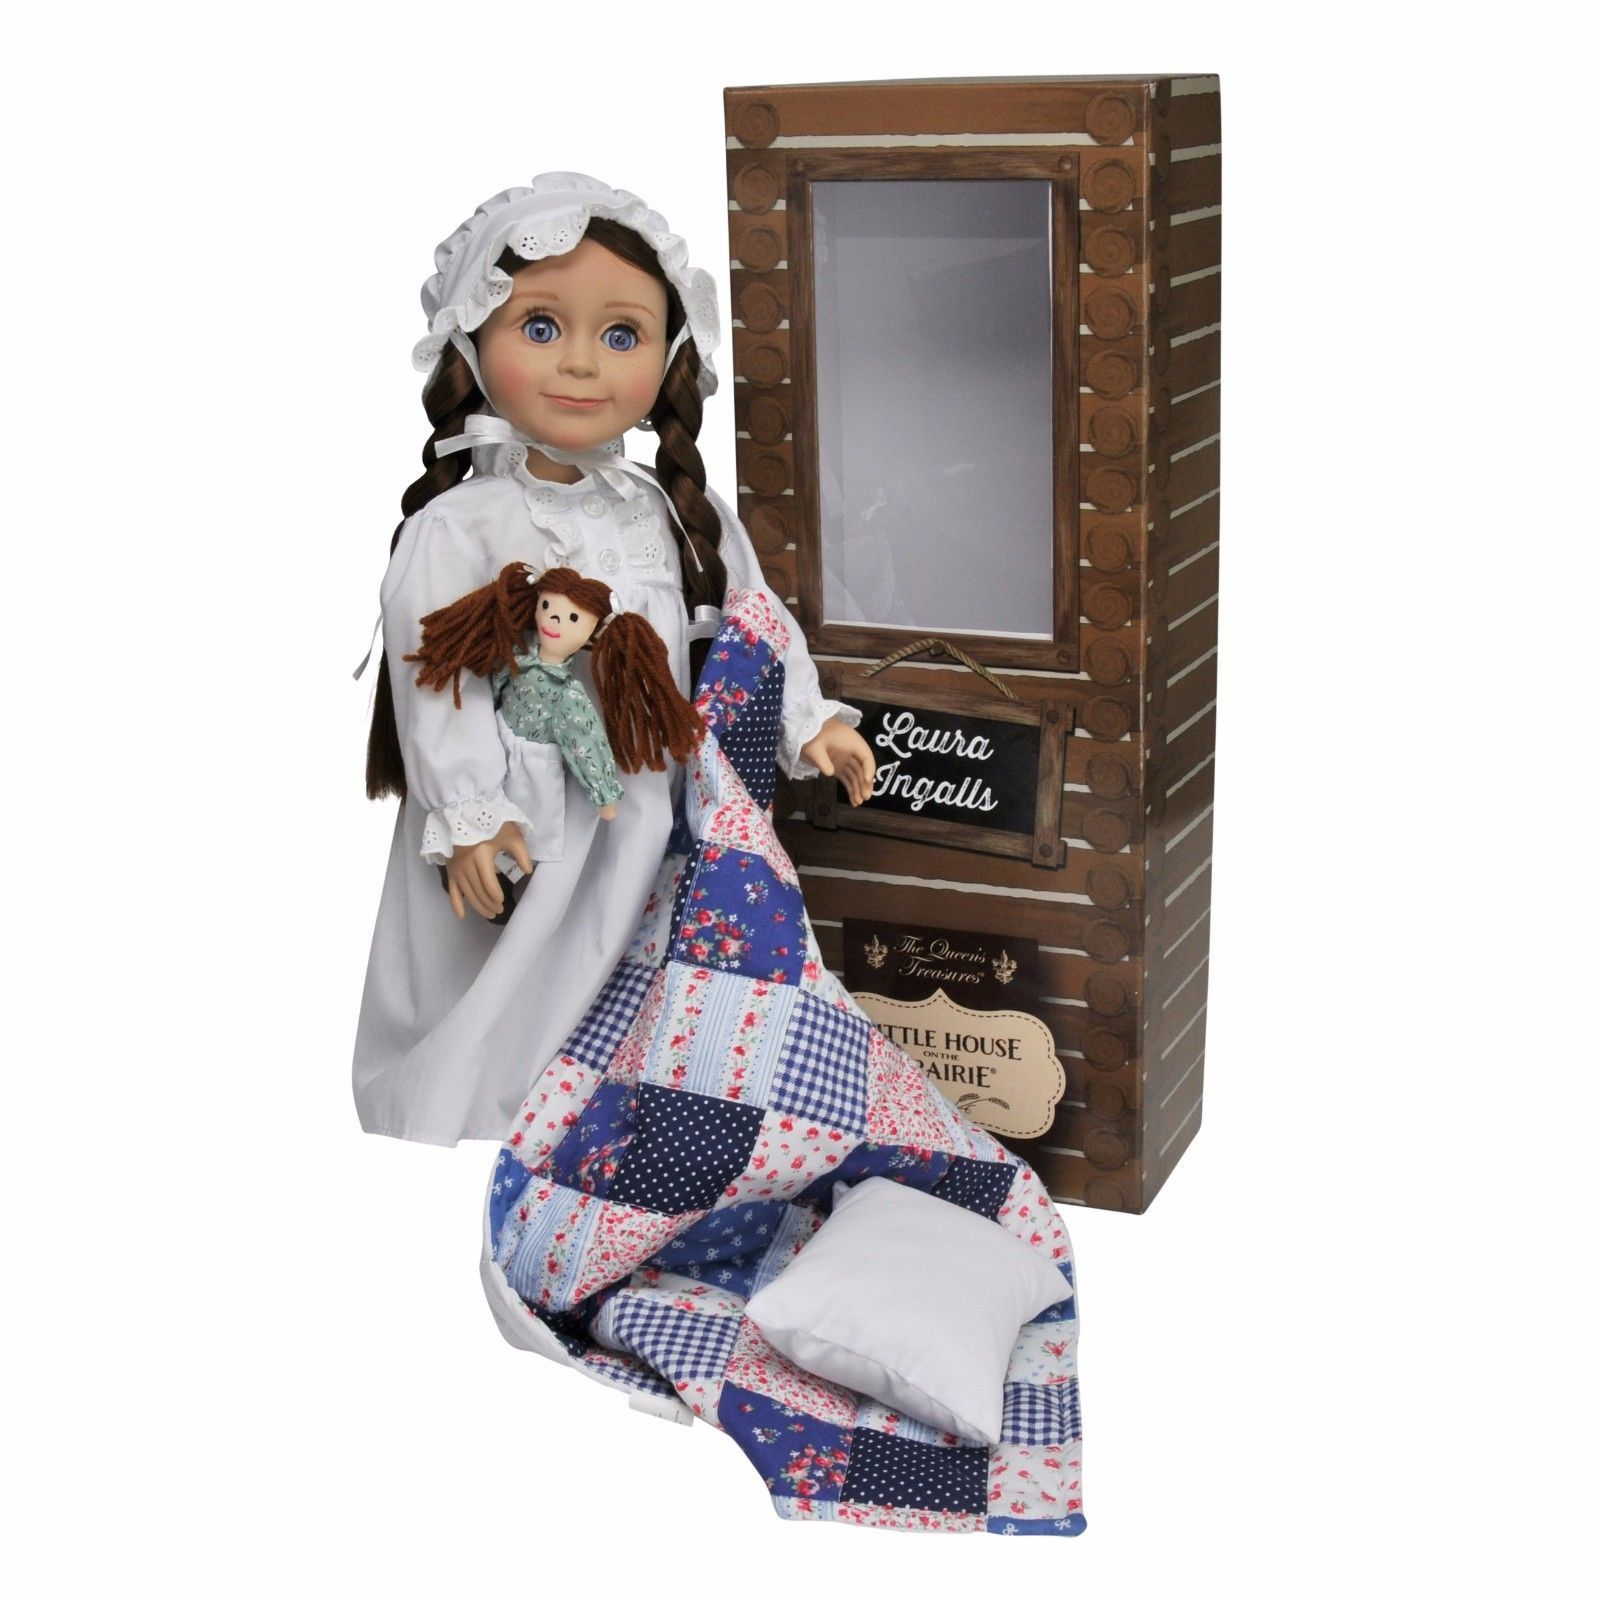 *Little House on the Prairie® 18 In Laura Ingalls Doll,Rag Doll, Bed Box,Bedding for sale  USA